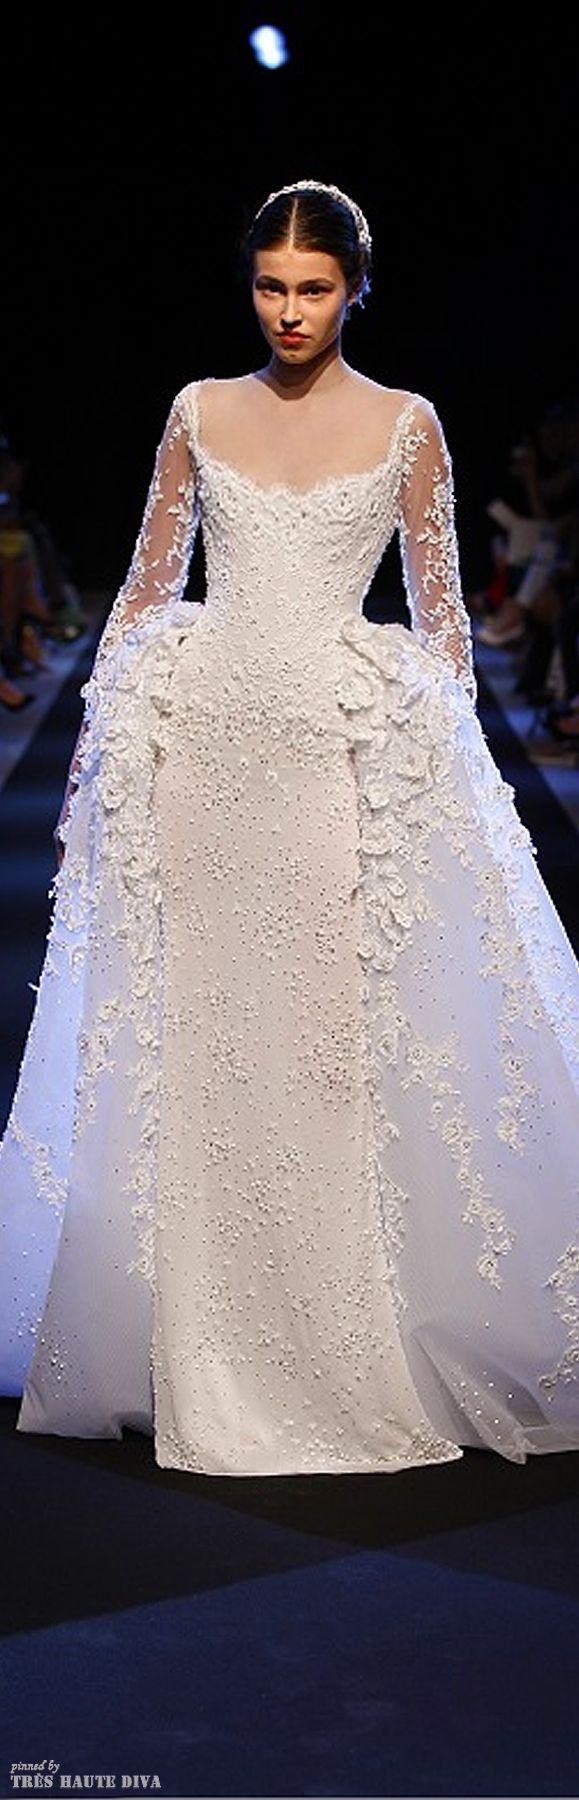 George Hobeika Couture Fall/Winter 2013/14 #wedding #dress. This is the style of dress Audrey Hepburn wore in the movie SABRINA as a ball gown. Just with less frufru - being more elegant than this one